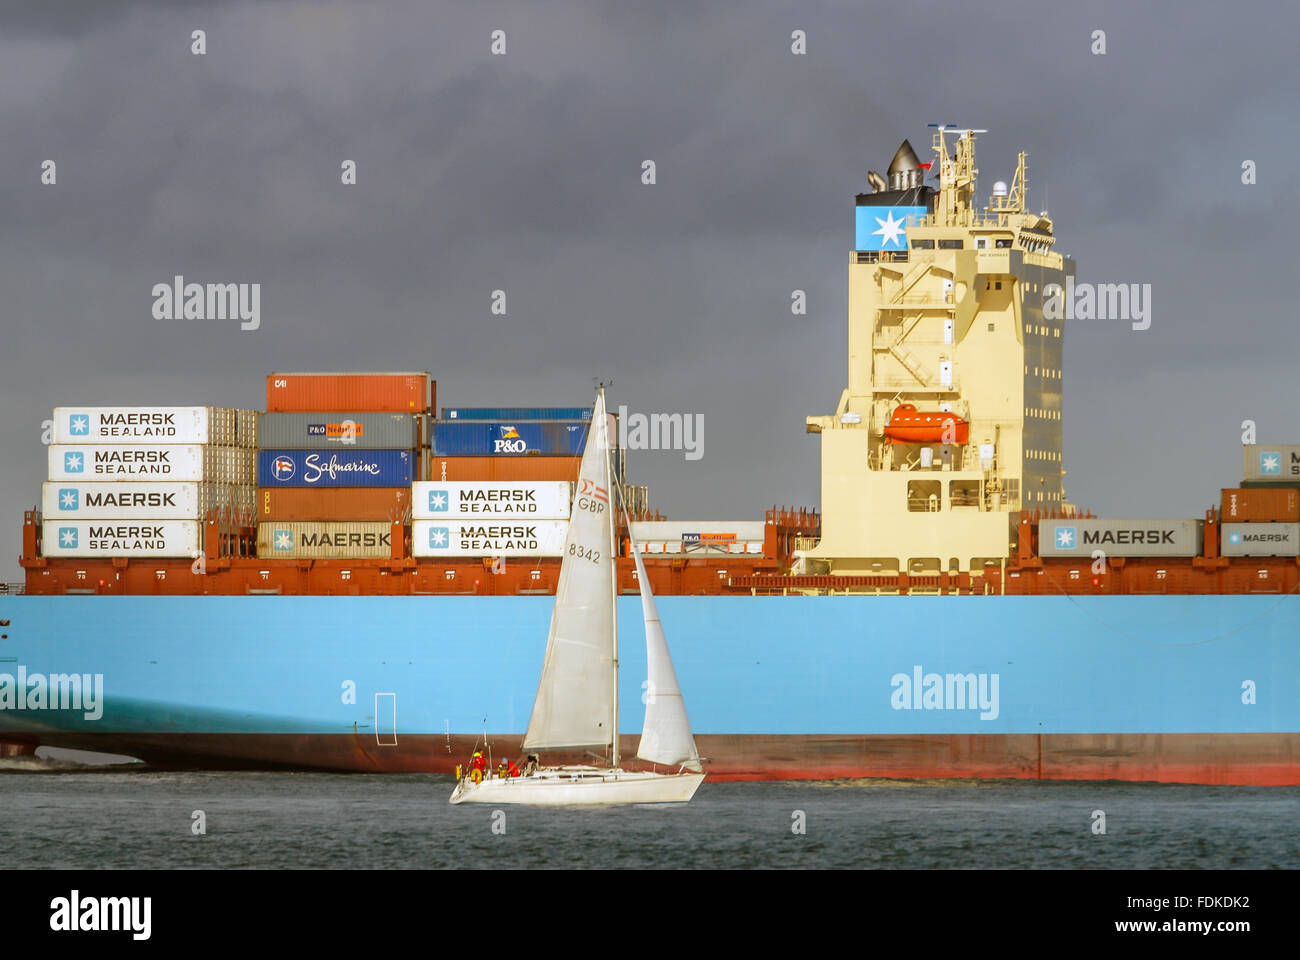 A Maersk container ship loaded with cargo negotiating the narrow channels of The Solent at the Isle of Wight. Stock Photo